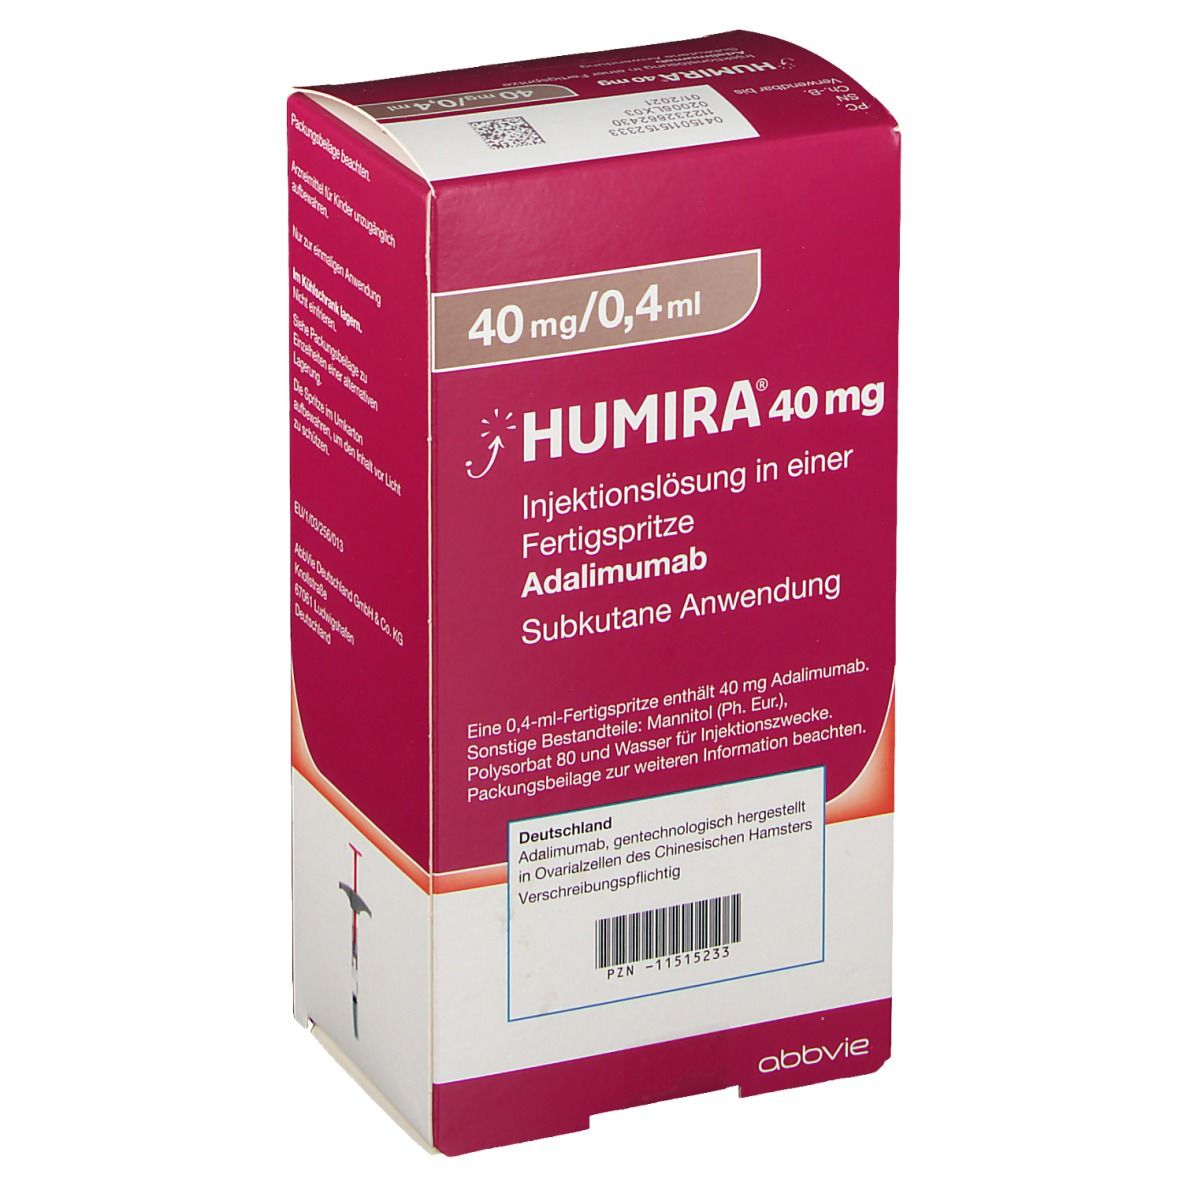 Humira girls trip commercial actresses list